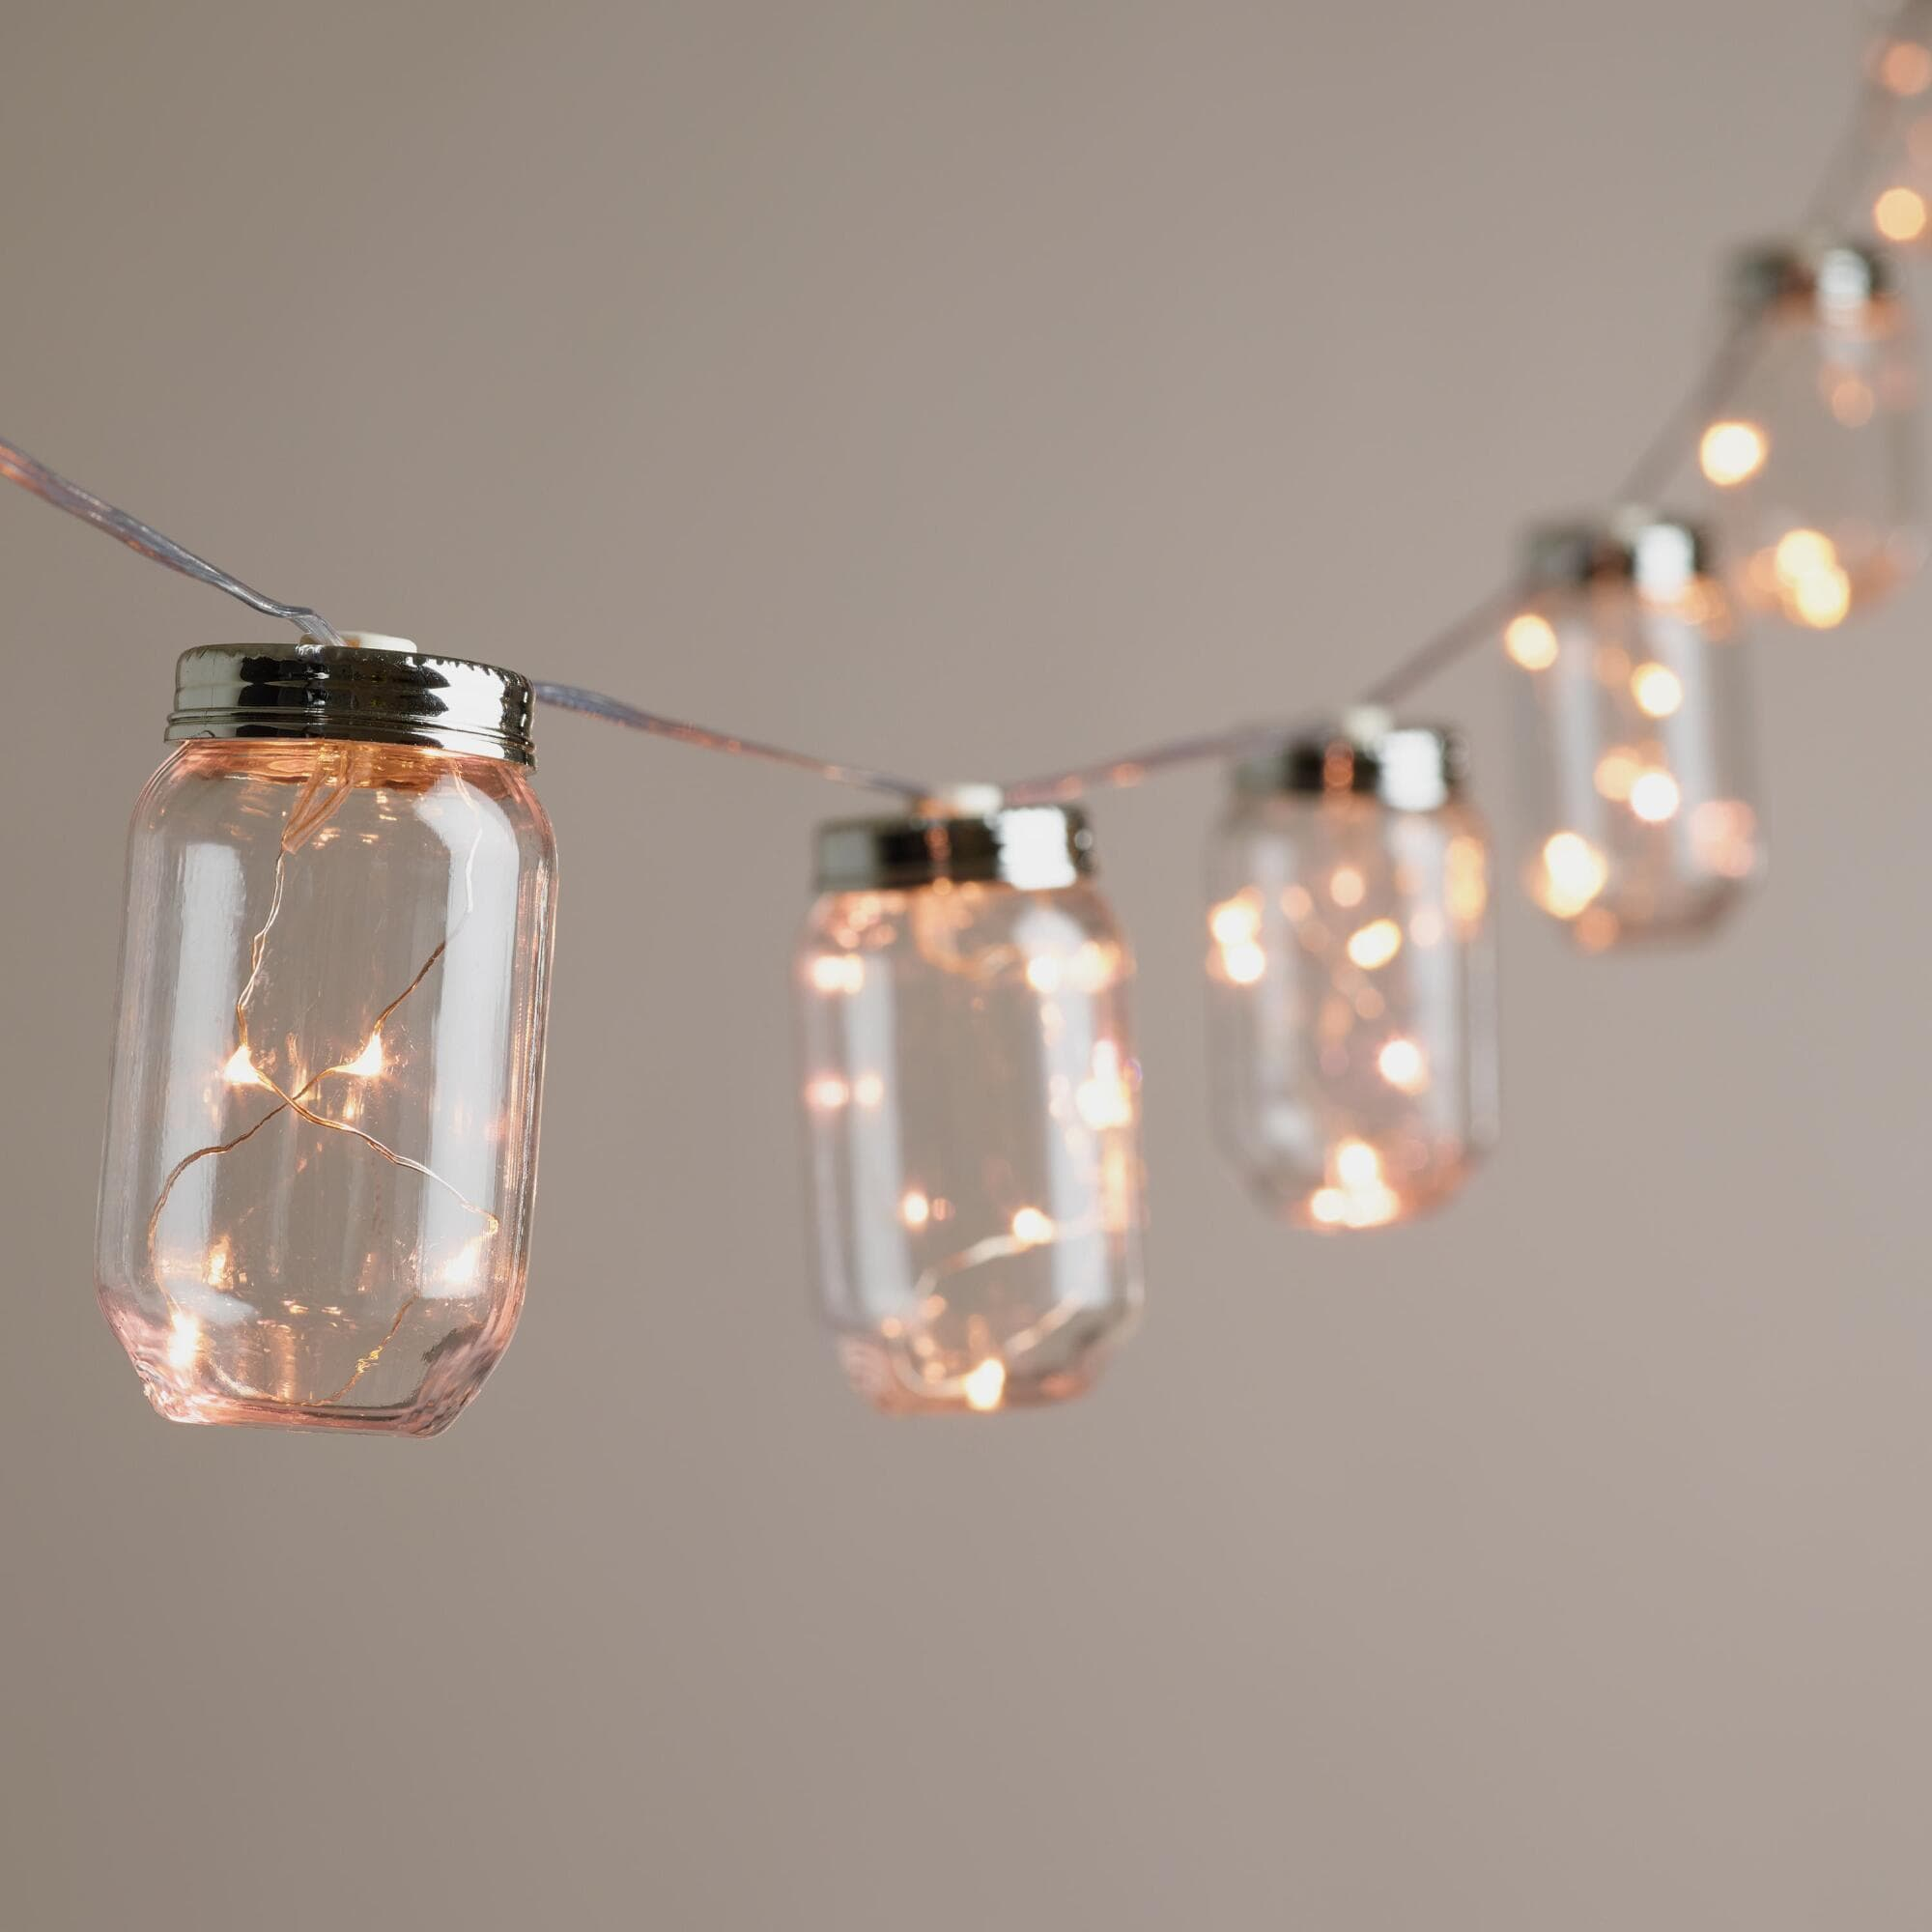 Mason Jar Firefly String Lights From World Market 2499